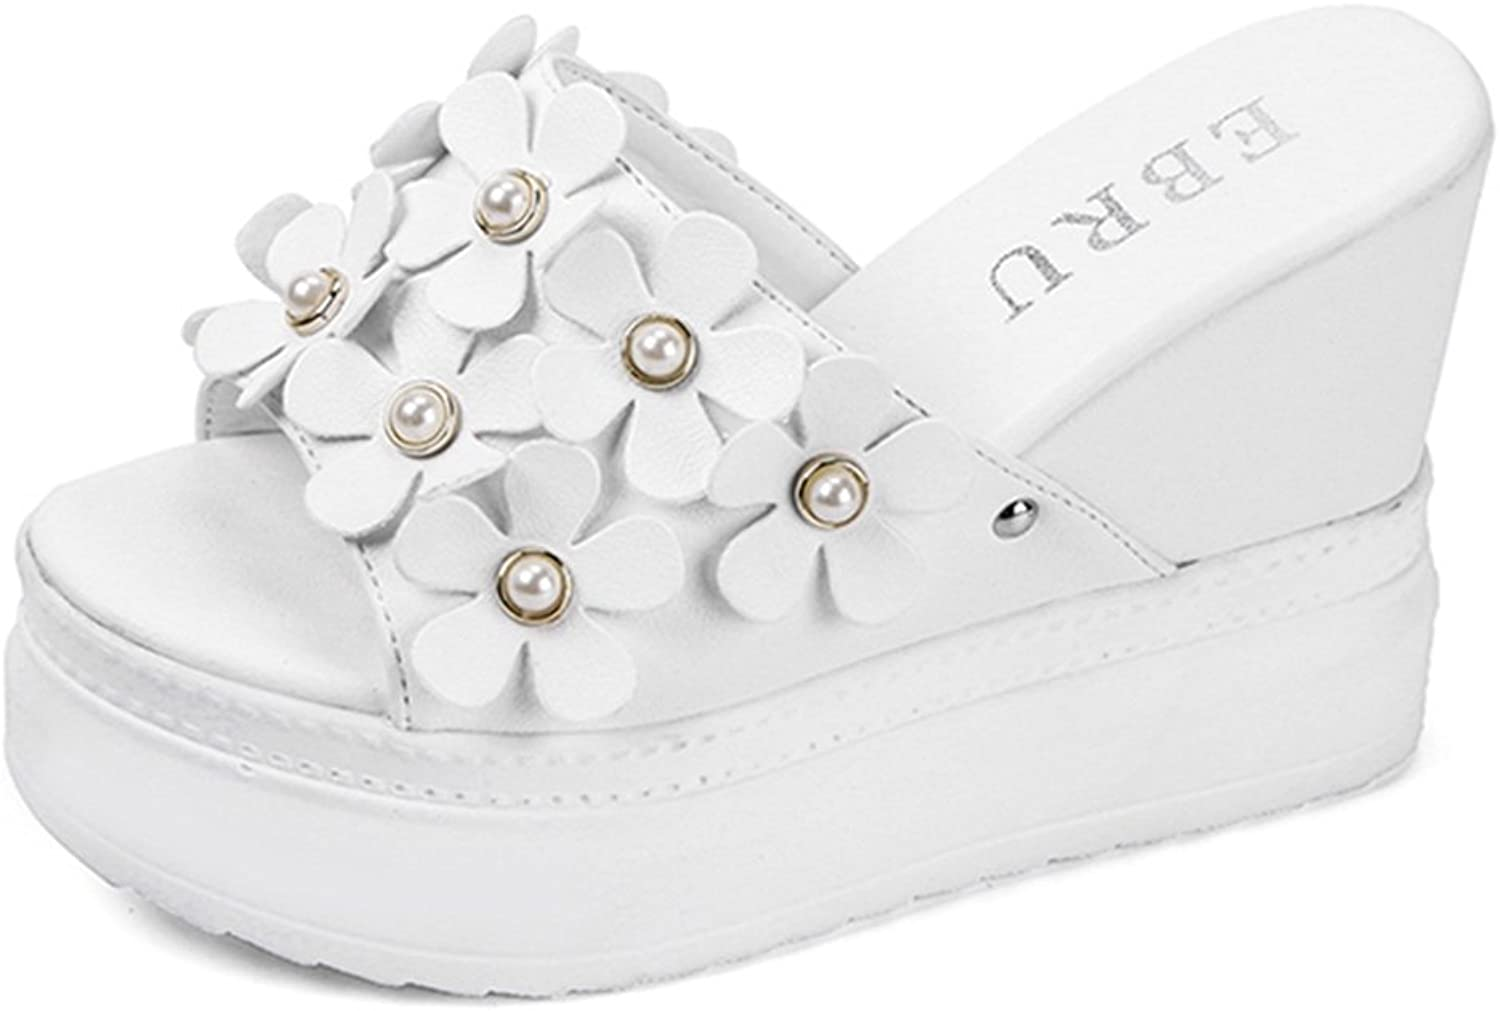 Kyle Walsh Pa Wedges Slippers for Women,Casual Pearl Flower Thick Platform Flip Flops Slides shoes